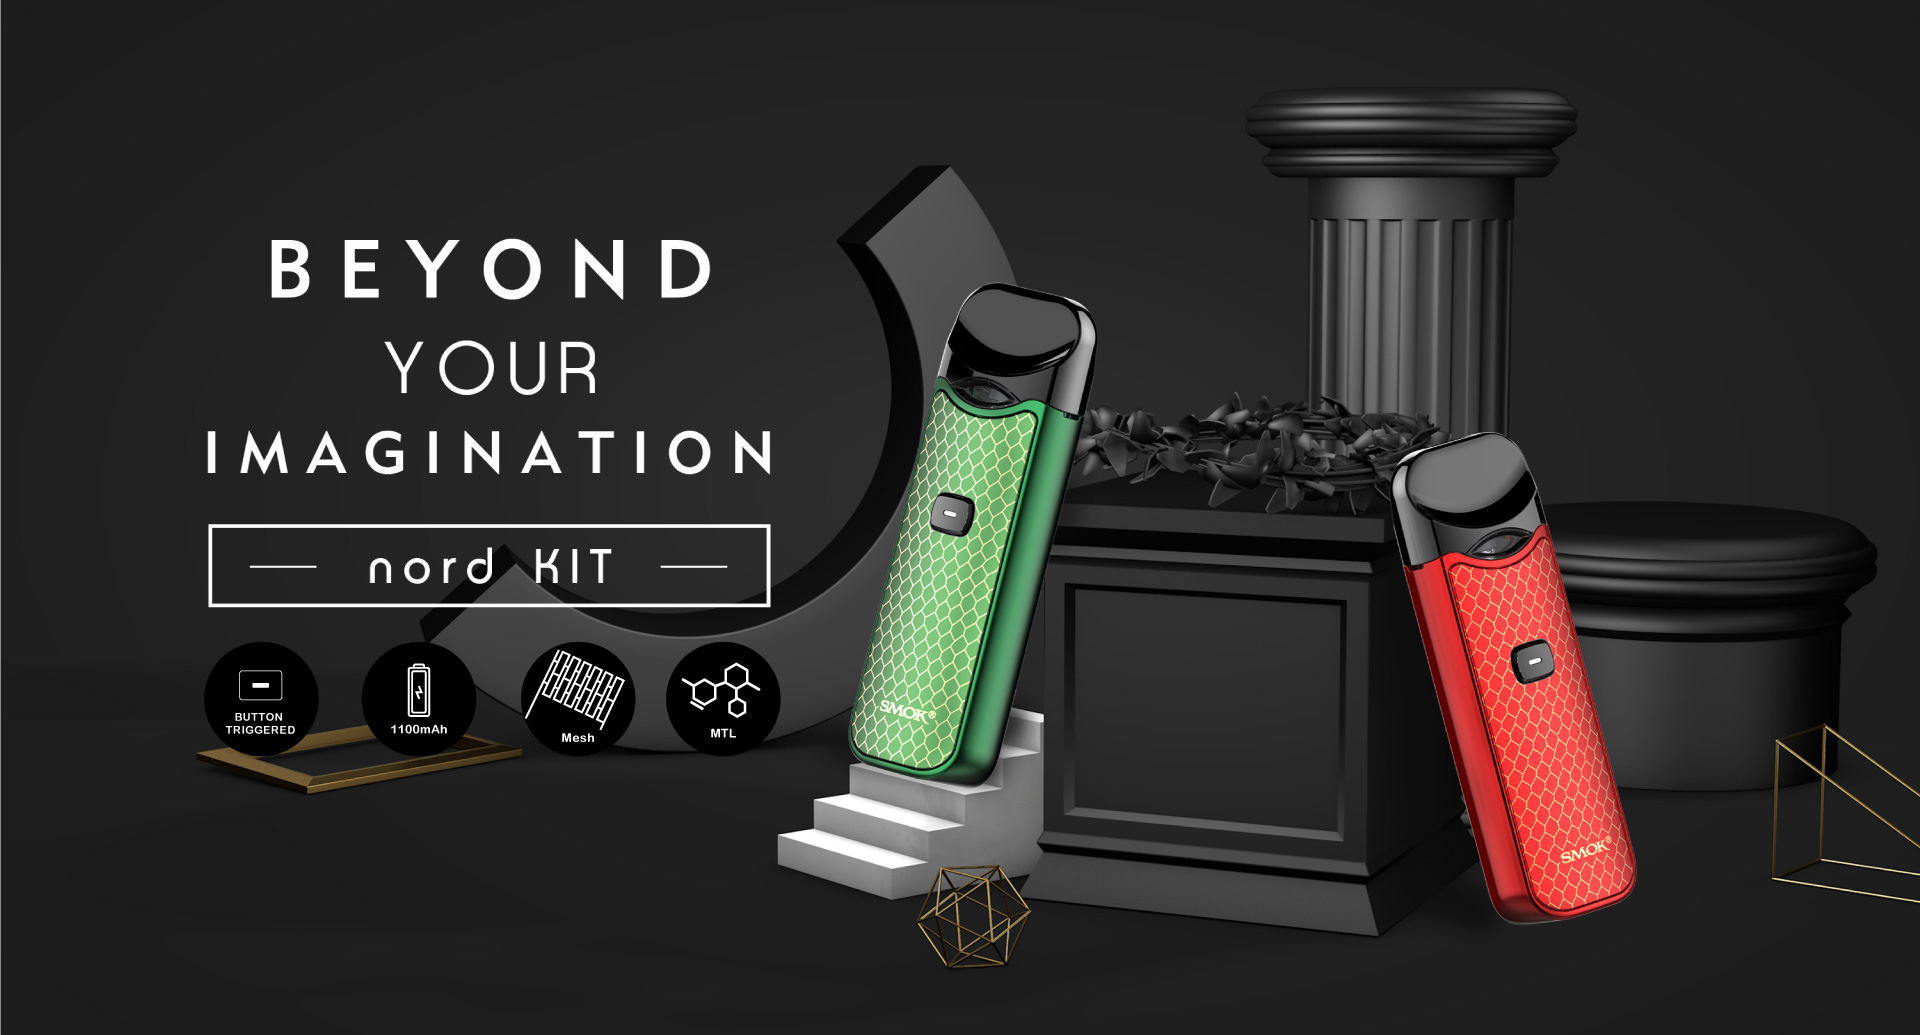 Nord Kit — A new pod system for multiple and lungful vaping experiences